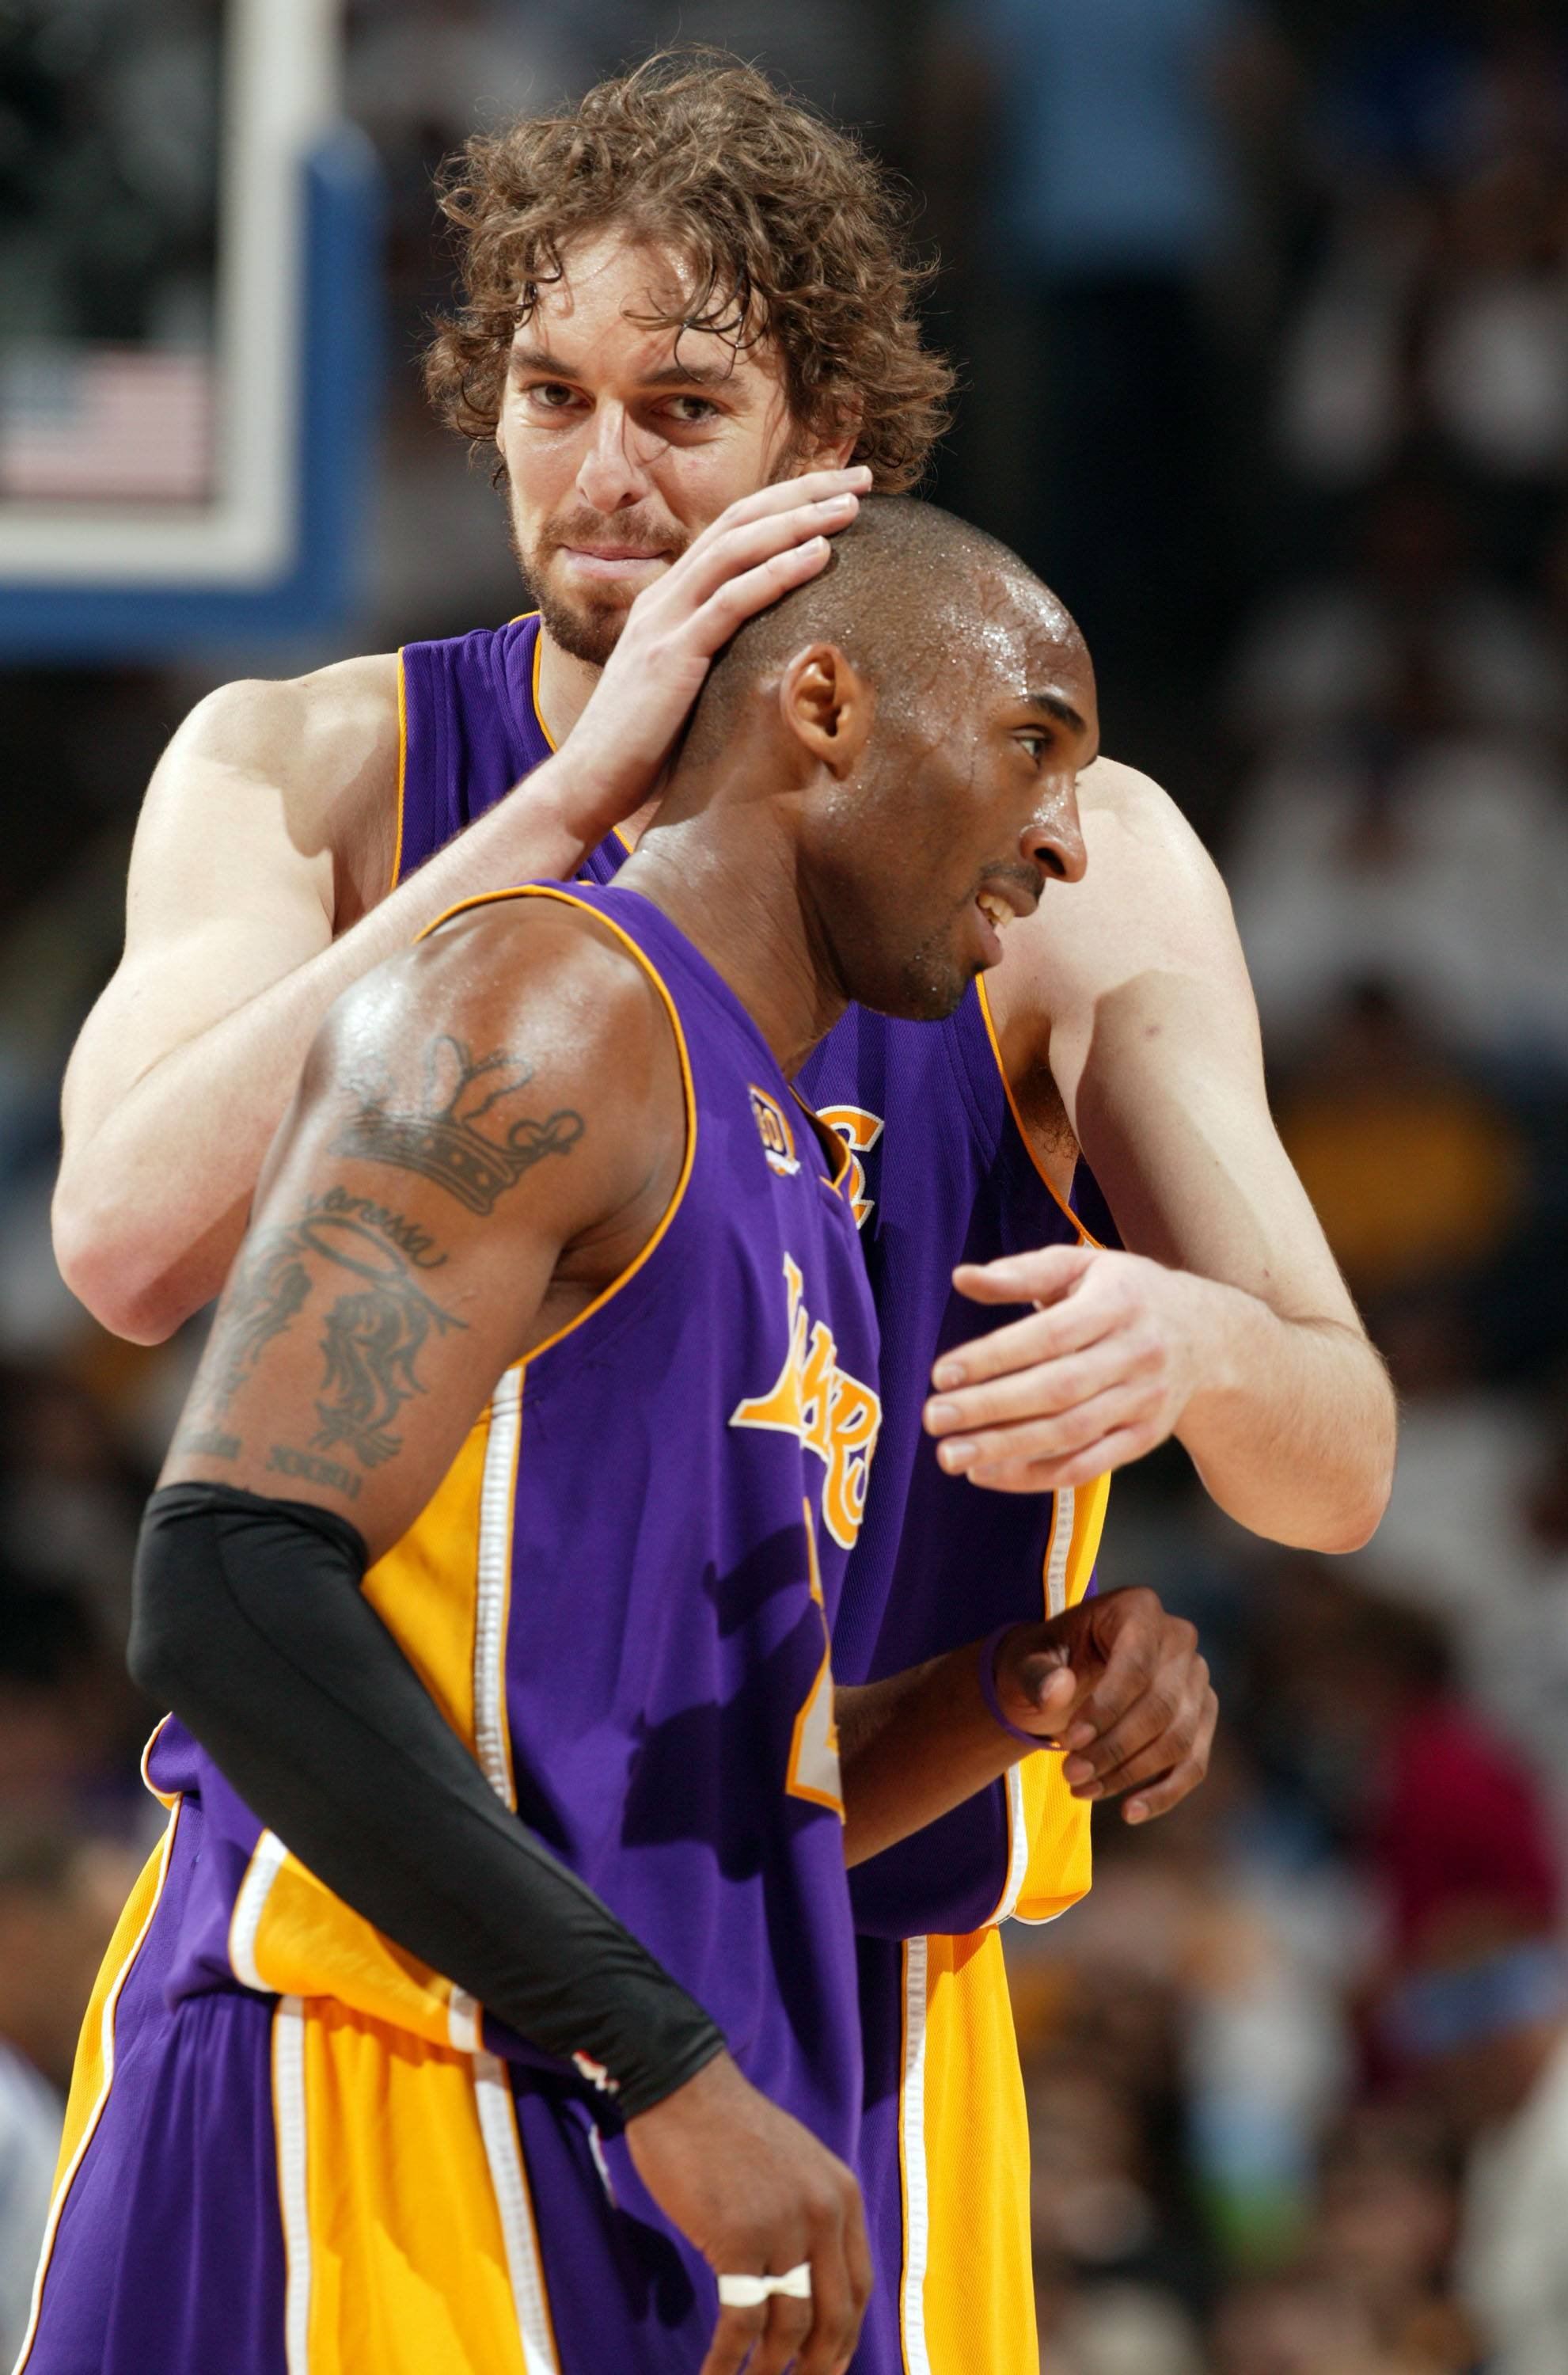 The Lakers' Pau Gasol, back, shares a momemt with teammate Kobe Bryant.